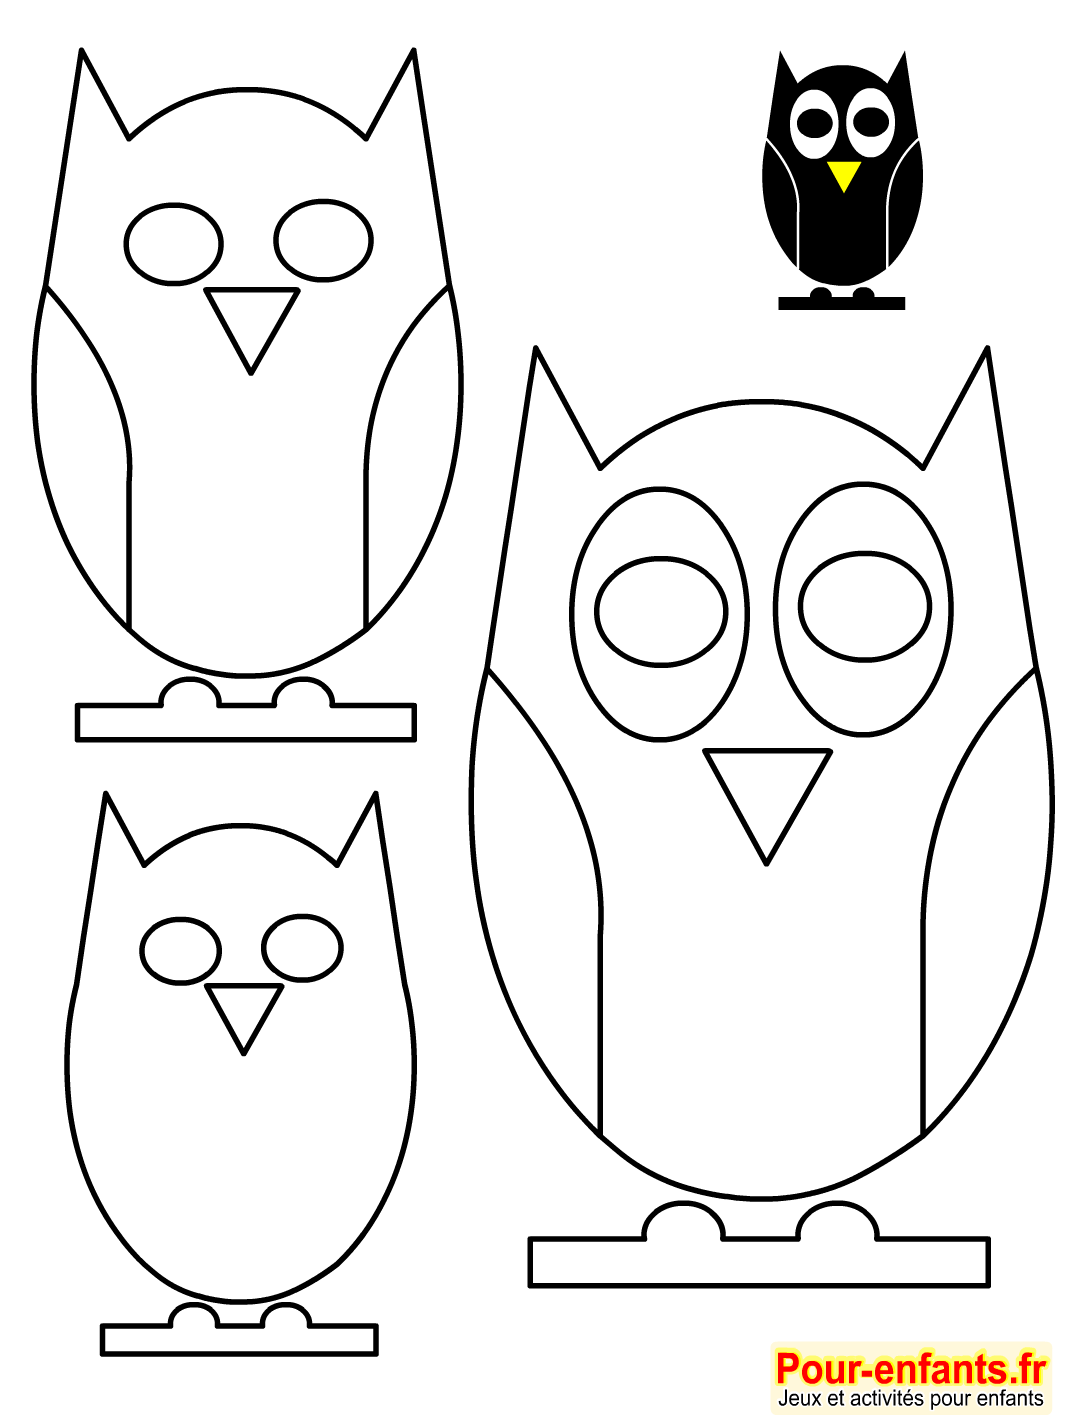 halloween bricolage enfant silhouette hibou forme pochoir hiboux gabarit patron hibou activit s. Black Bedroom Furniture Sets. Home Design Ideas